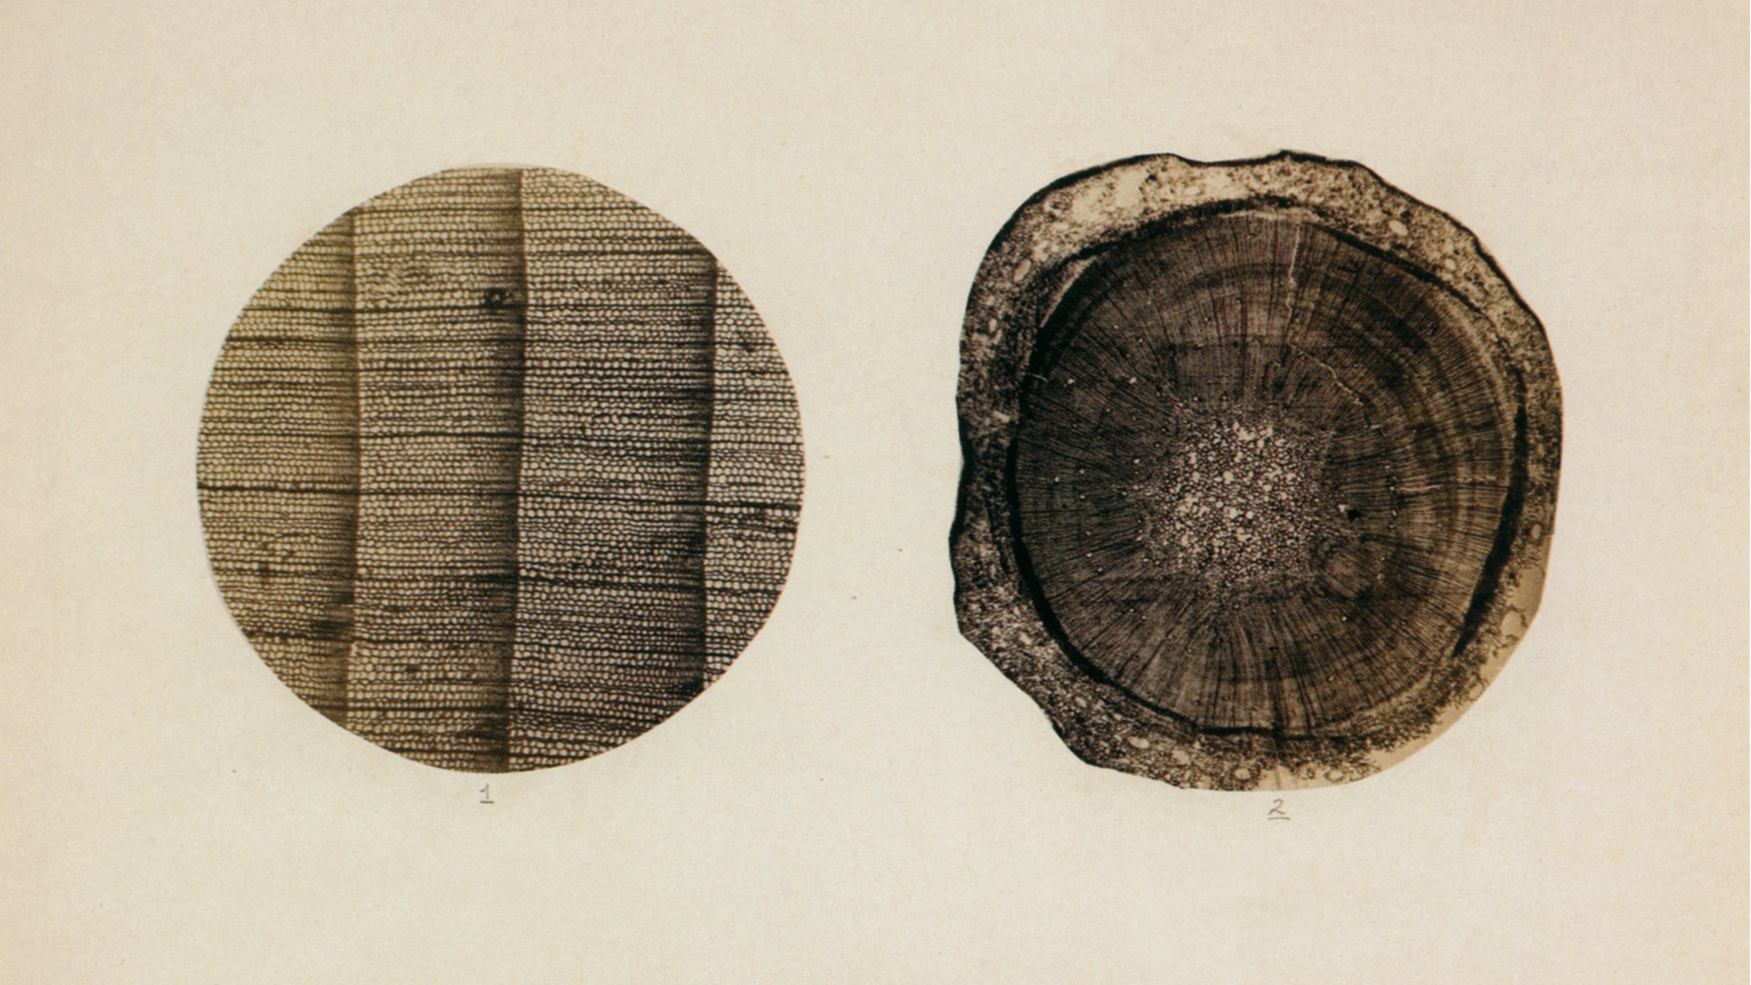 Jules Girard, Photomicrographs of a Fir Tree, 1868.